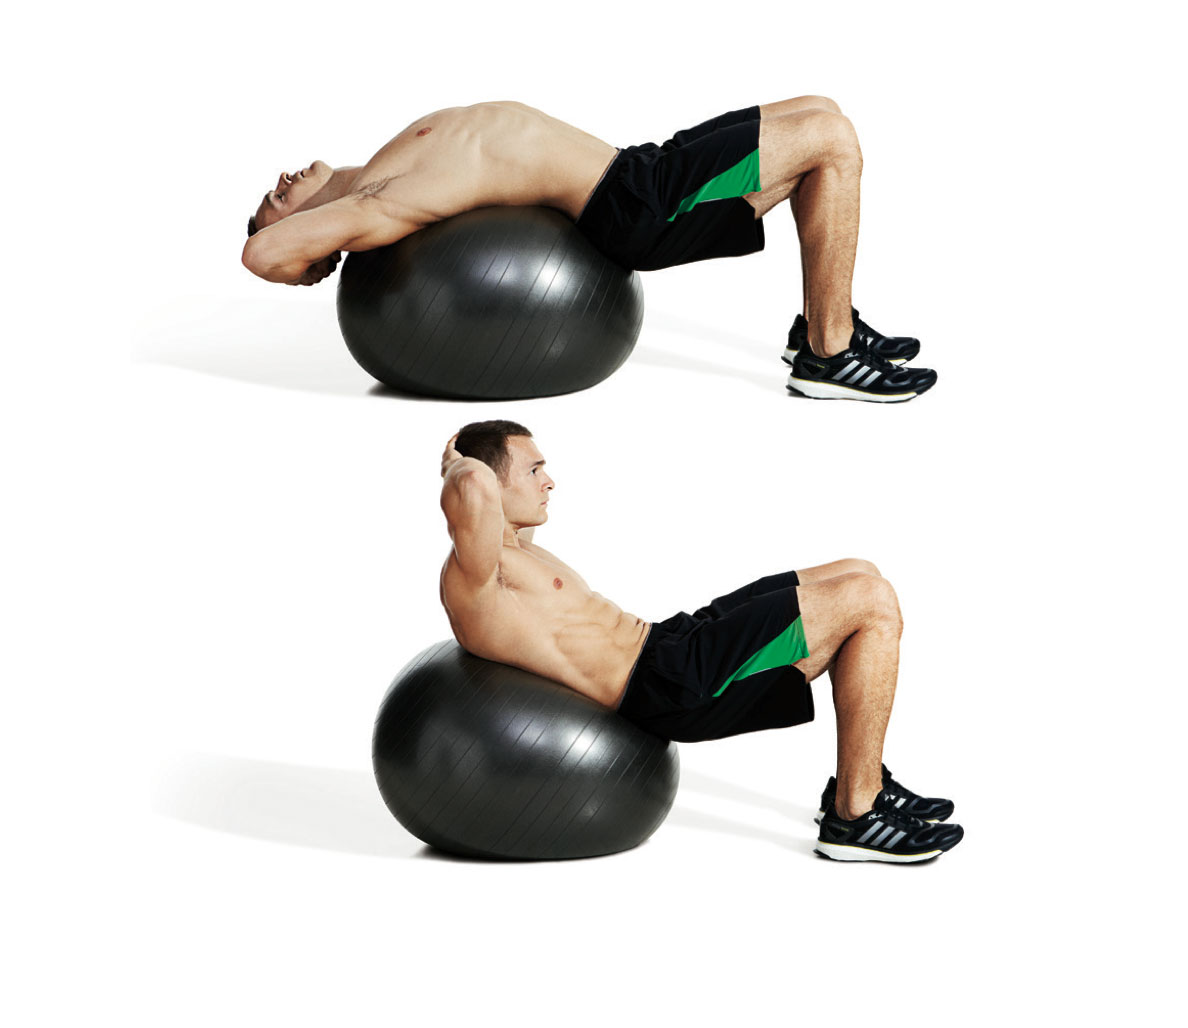 how to get six pack abs fast with stability ball crunch